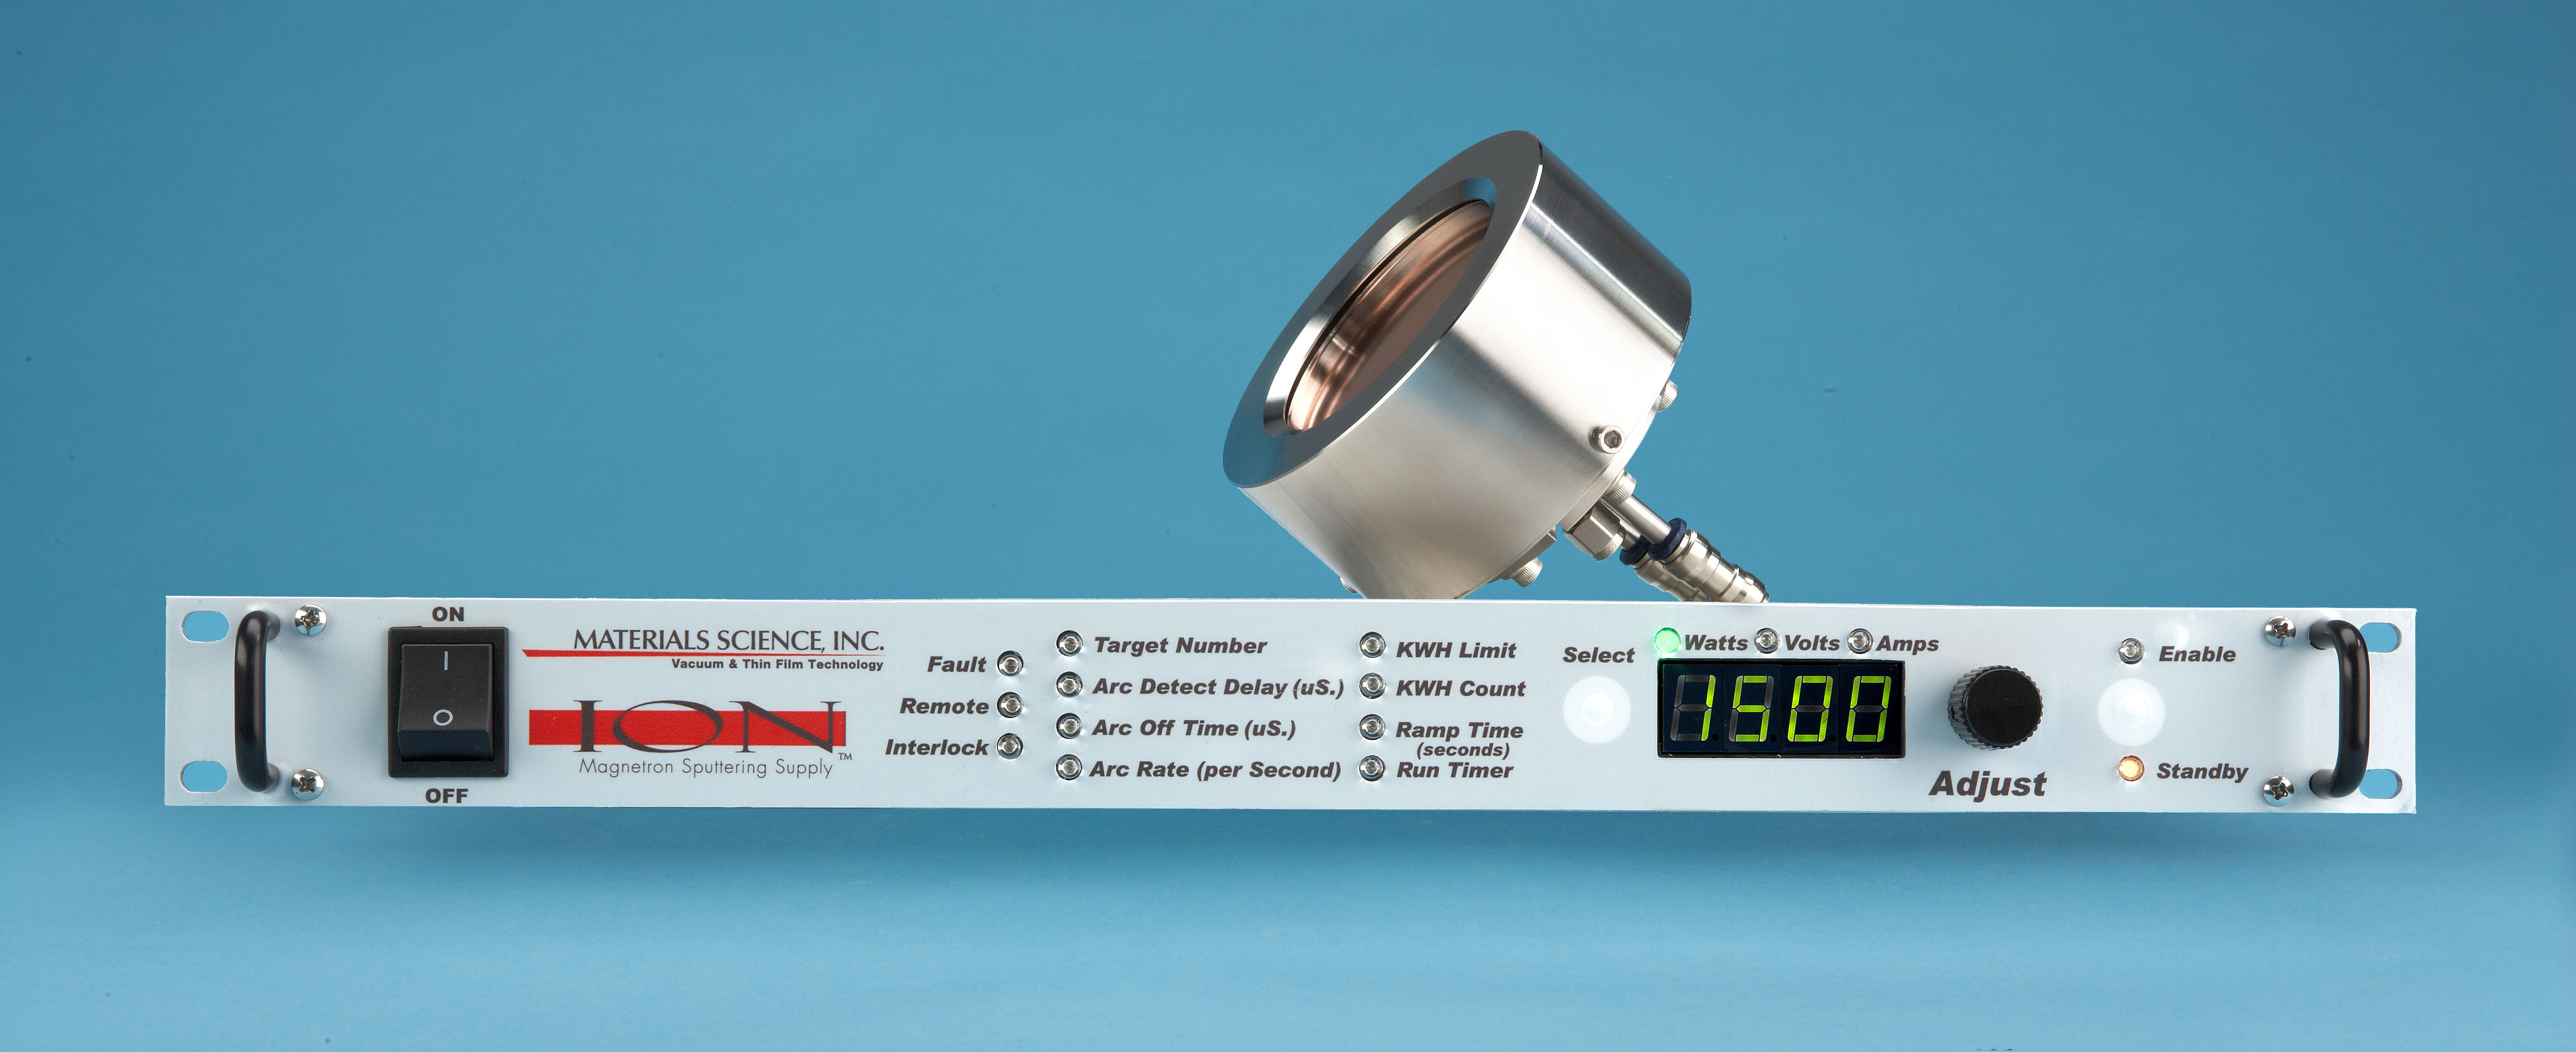 Dc Magnetron Power Supplies Selecting And Using Rs 232 Interface Parts For Your Supply Voltages